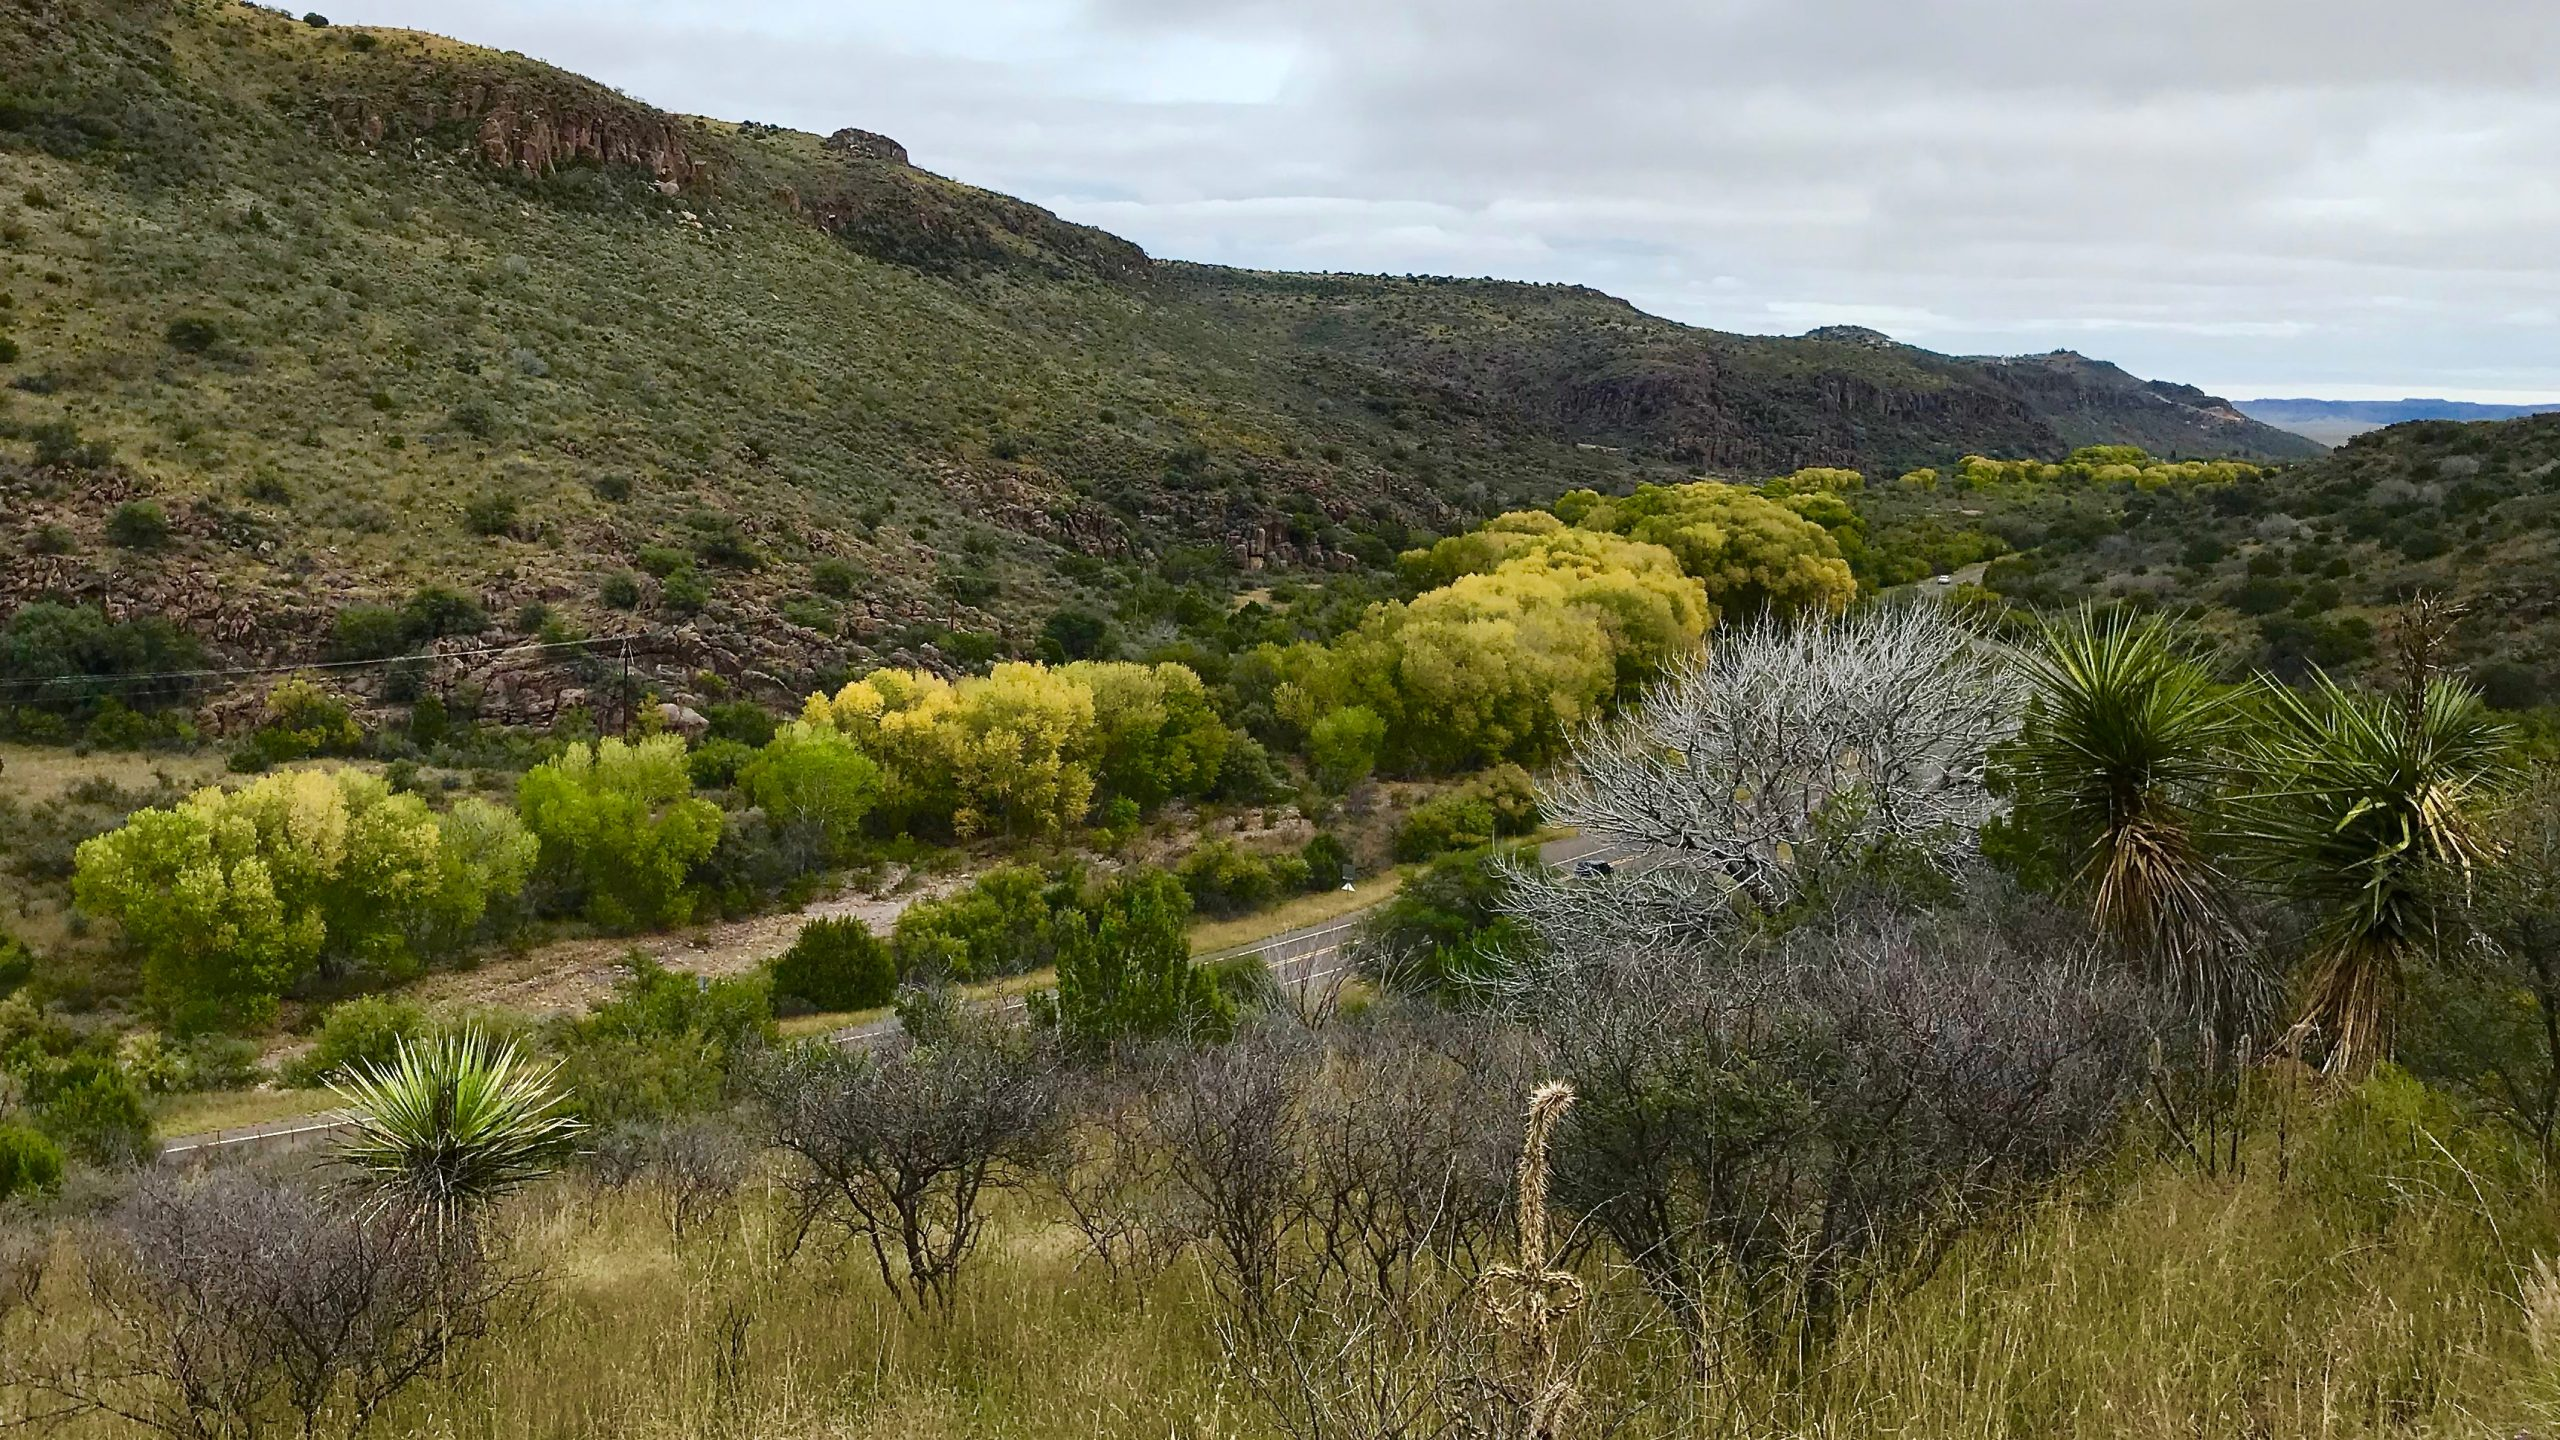 The Davis Mountain Scenic Loop follows alongside Limpia Creek through Limpia Canyon near Fort Davis, Texas. Cottonwood trees along the creek begin to show their autumn colors.